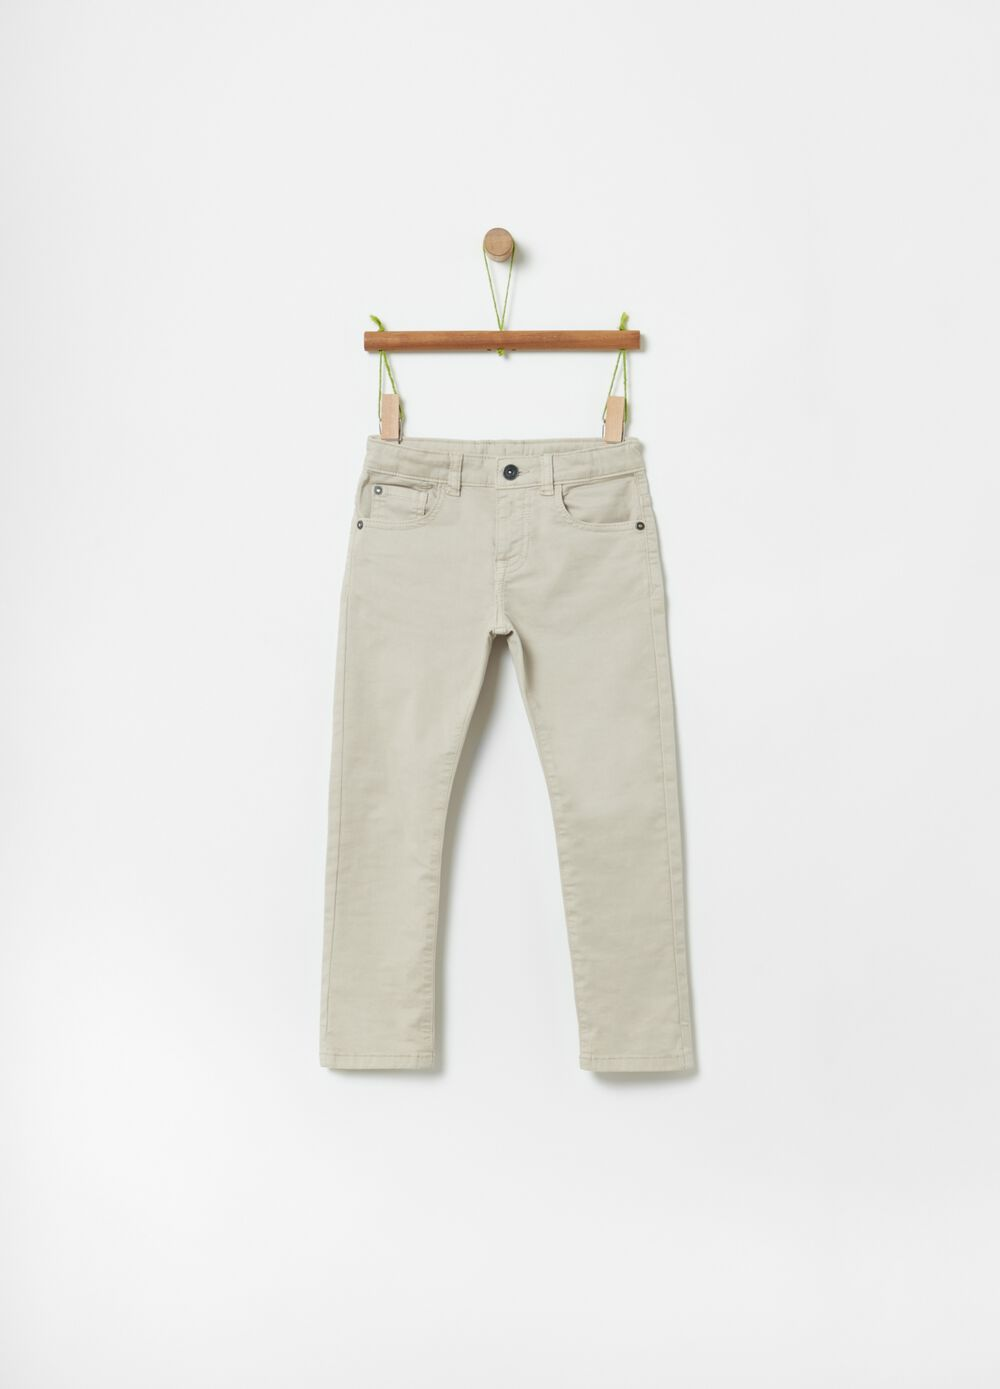 100% organic cotton trousers with five pockets